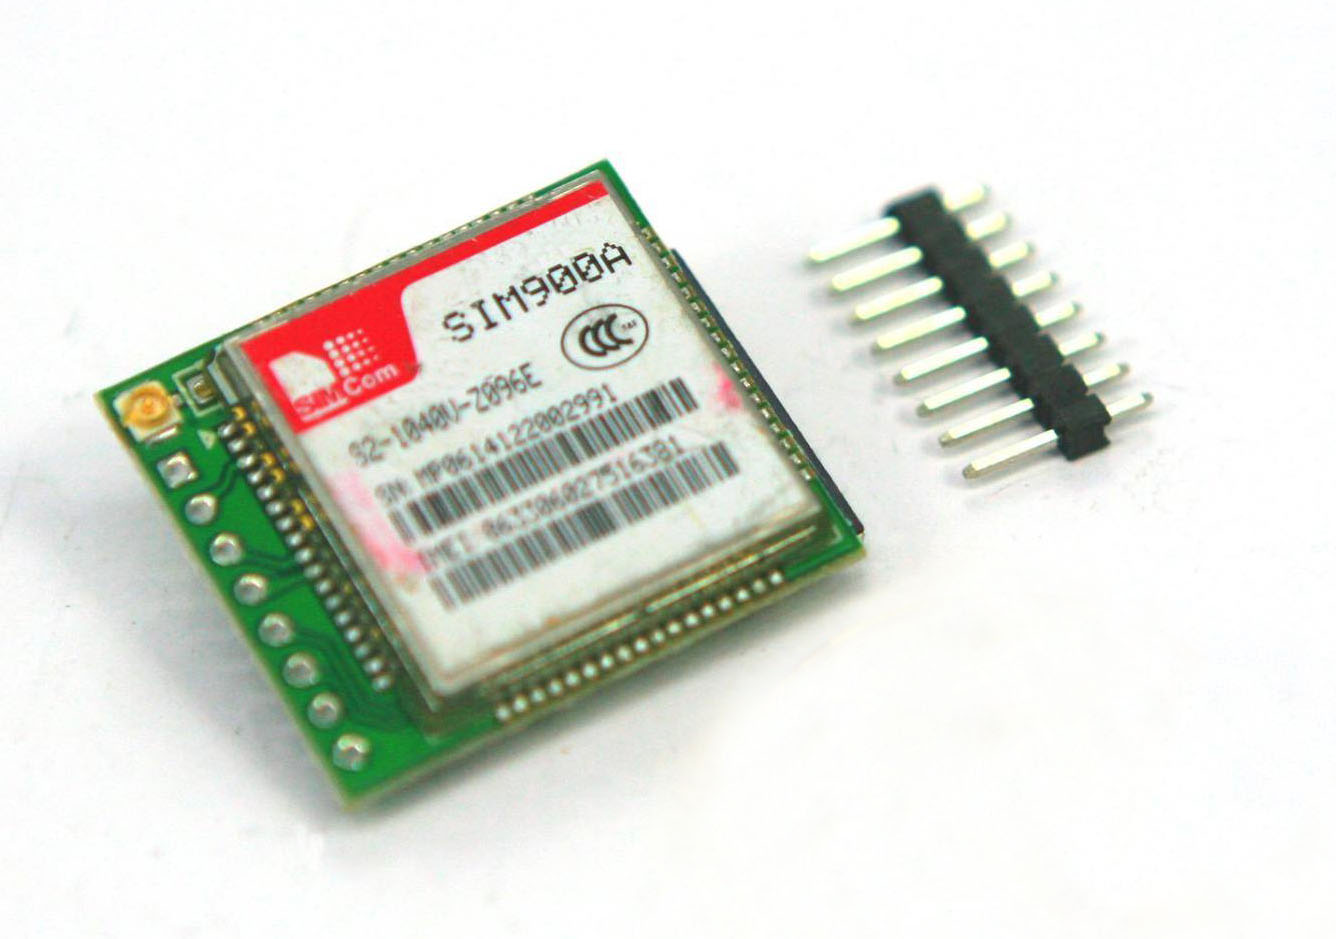 Using the SIM900A GSM Module with the Arduino | Microcontroller